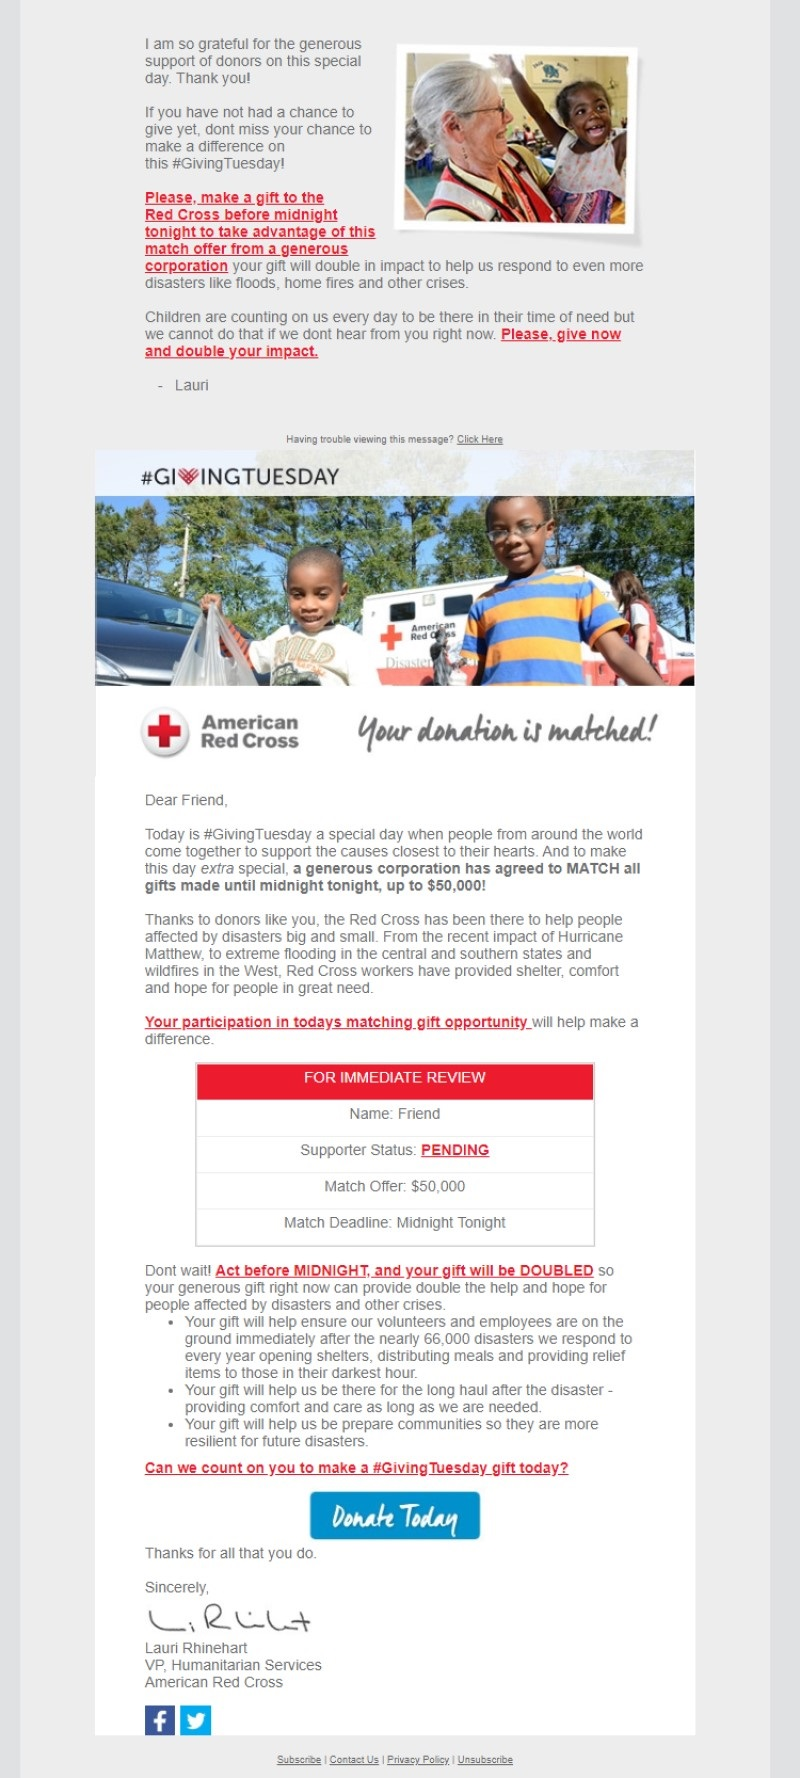 American Red Cross email showing an example of a Giving Tuesday letter from someone important